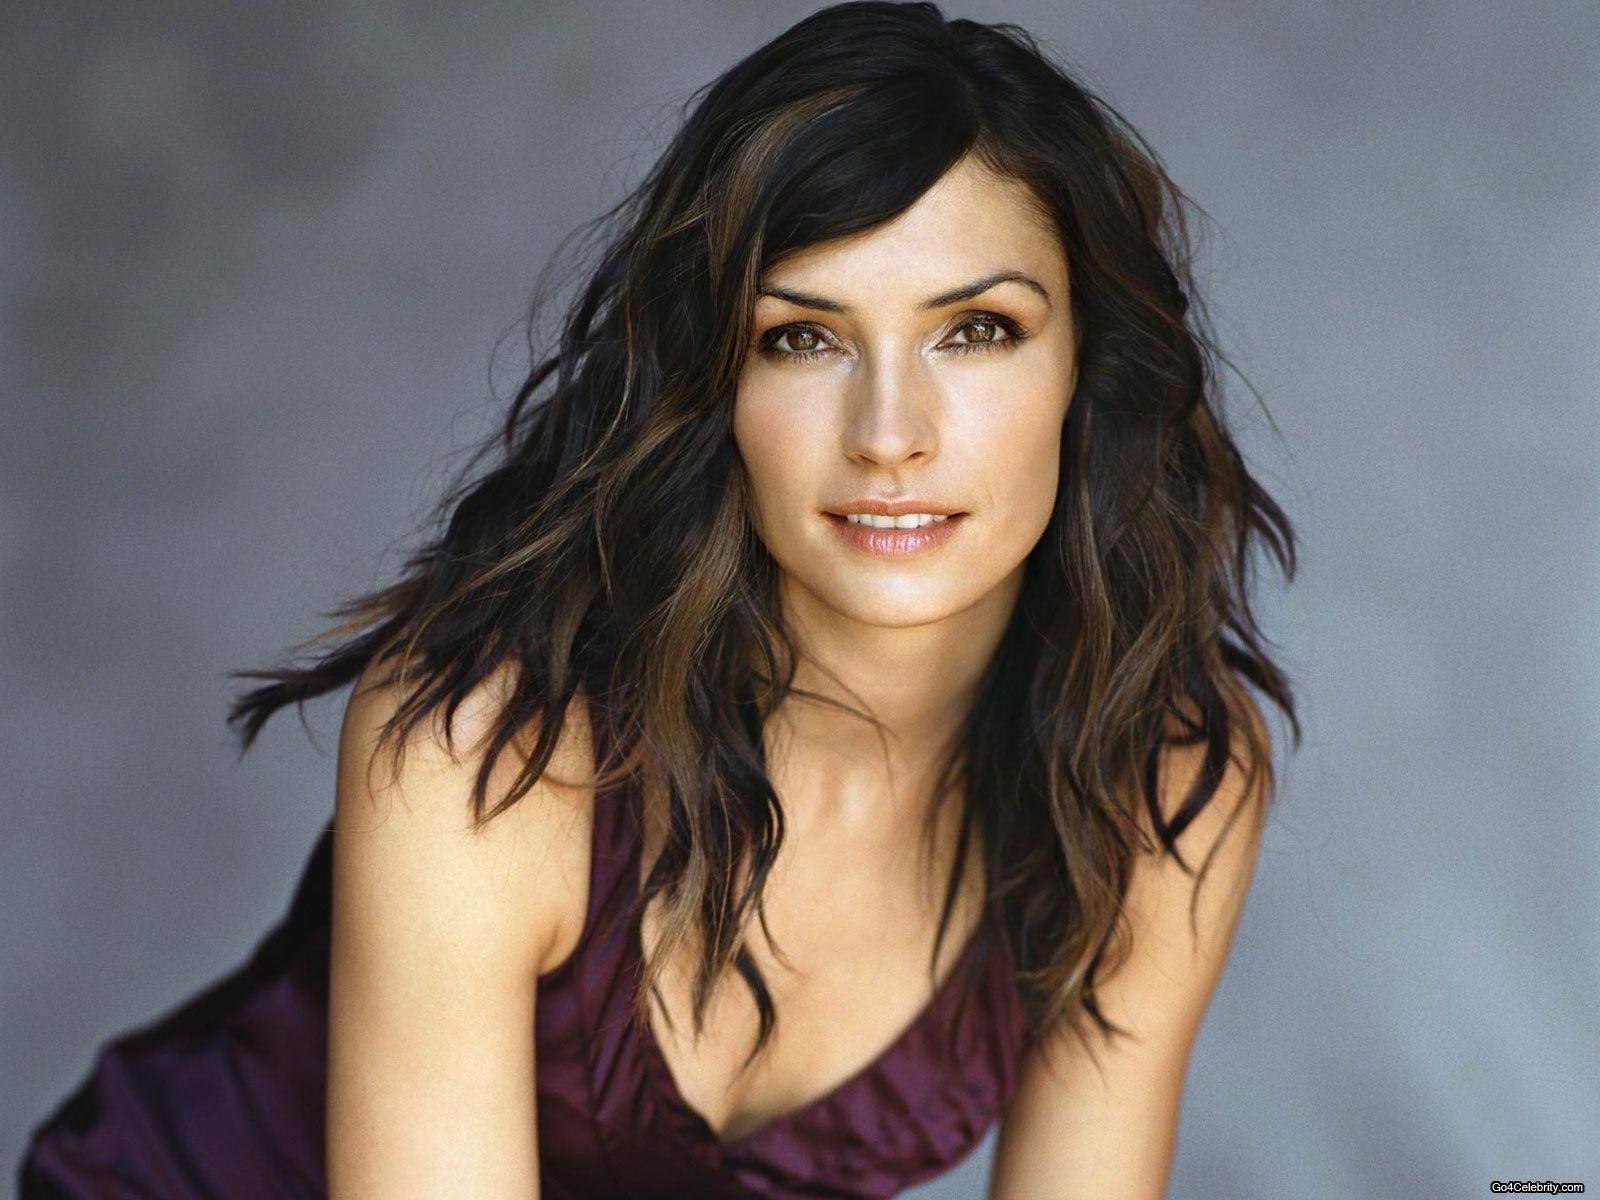 Famke Janssen Images Famke Janssen Hd Wallpaper And Background Photos 779990